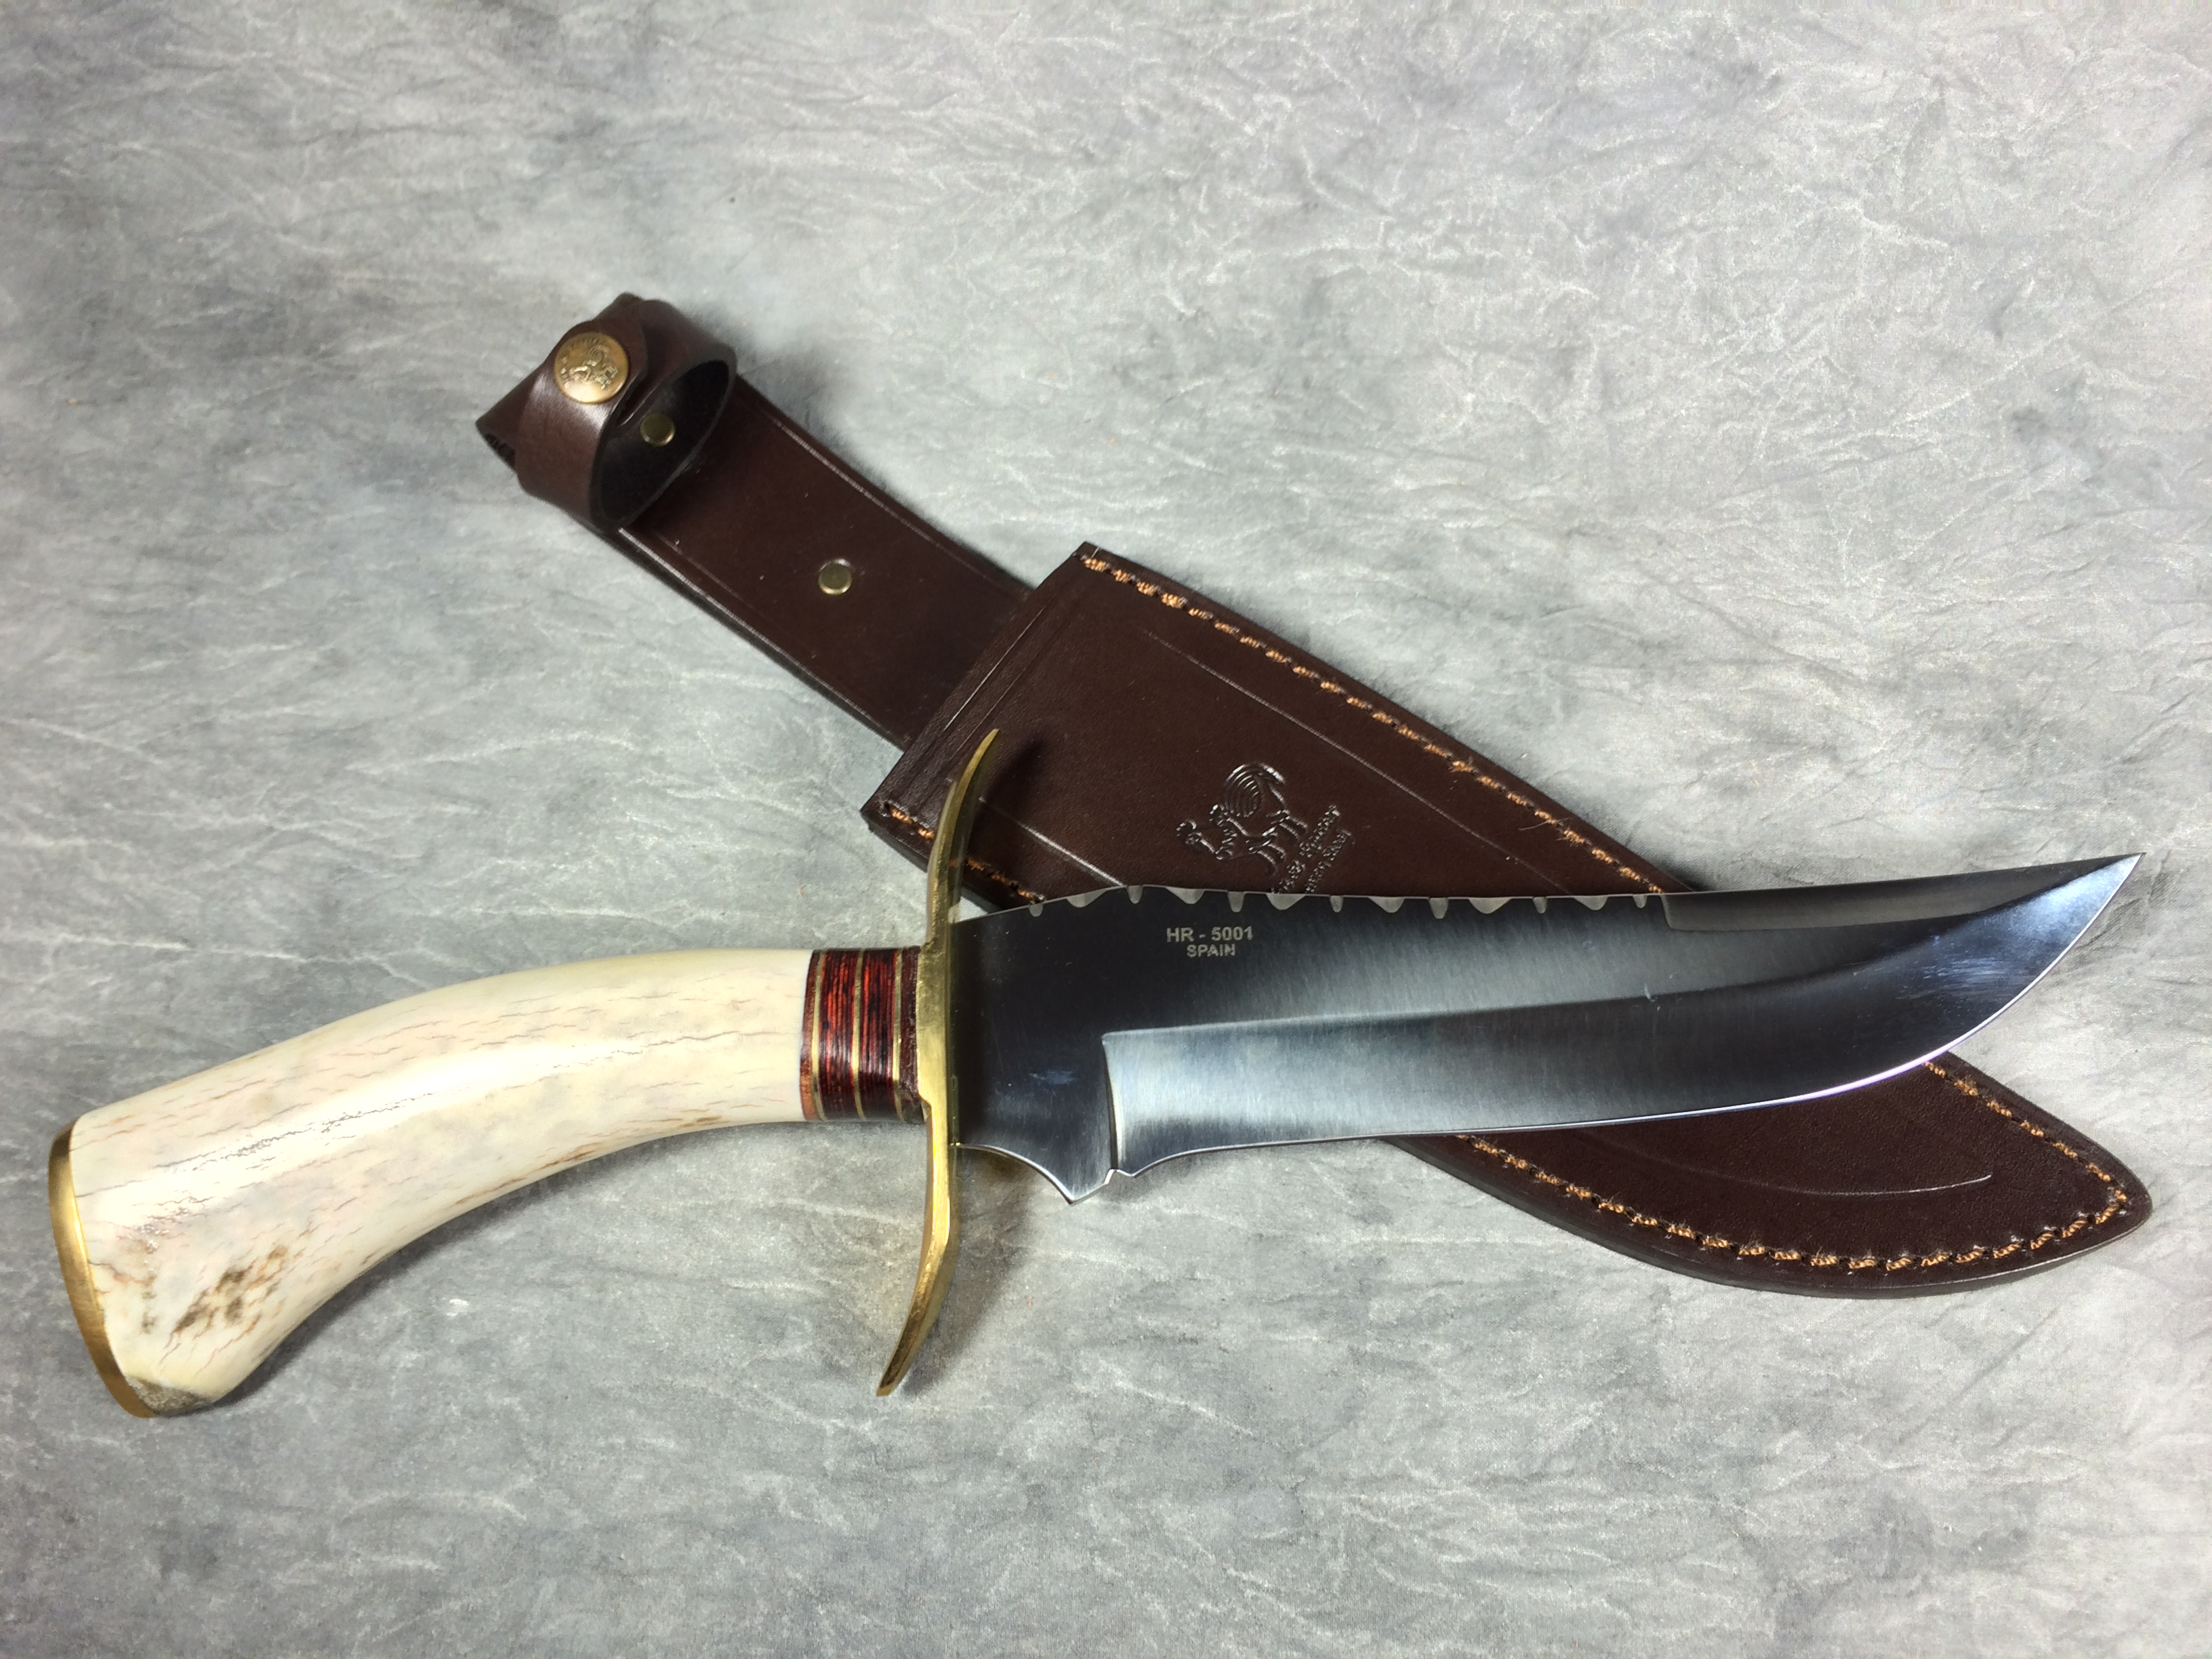 dating hen and rooster knives I need some help on dating this congress any info is appreciated thanks the tang has the hen and rooster w soligen under it.